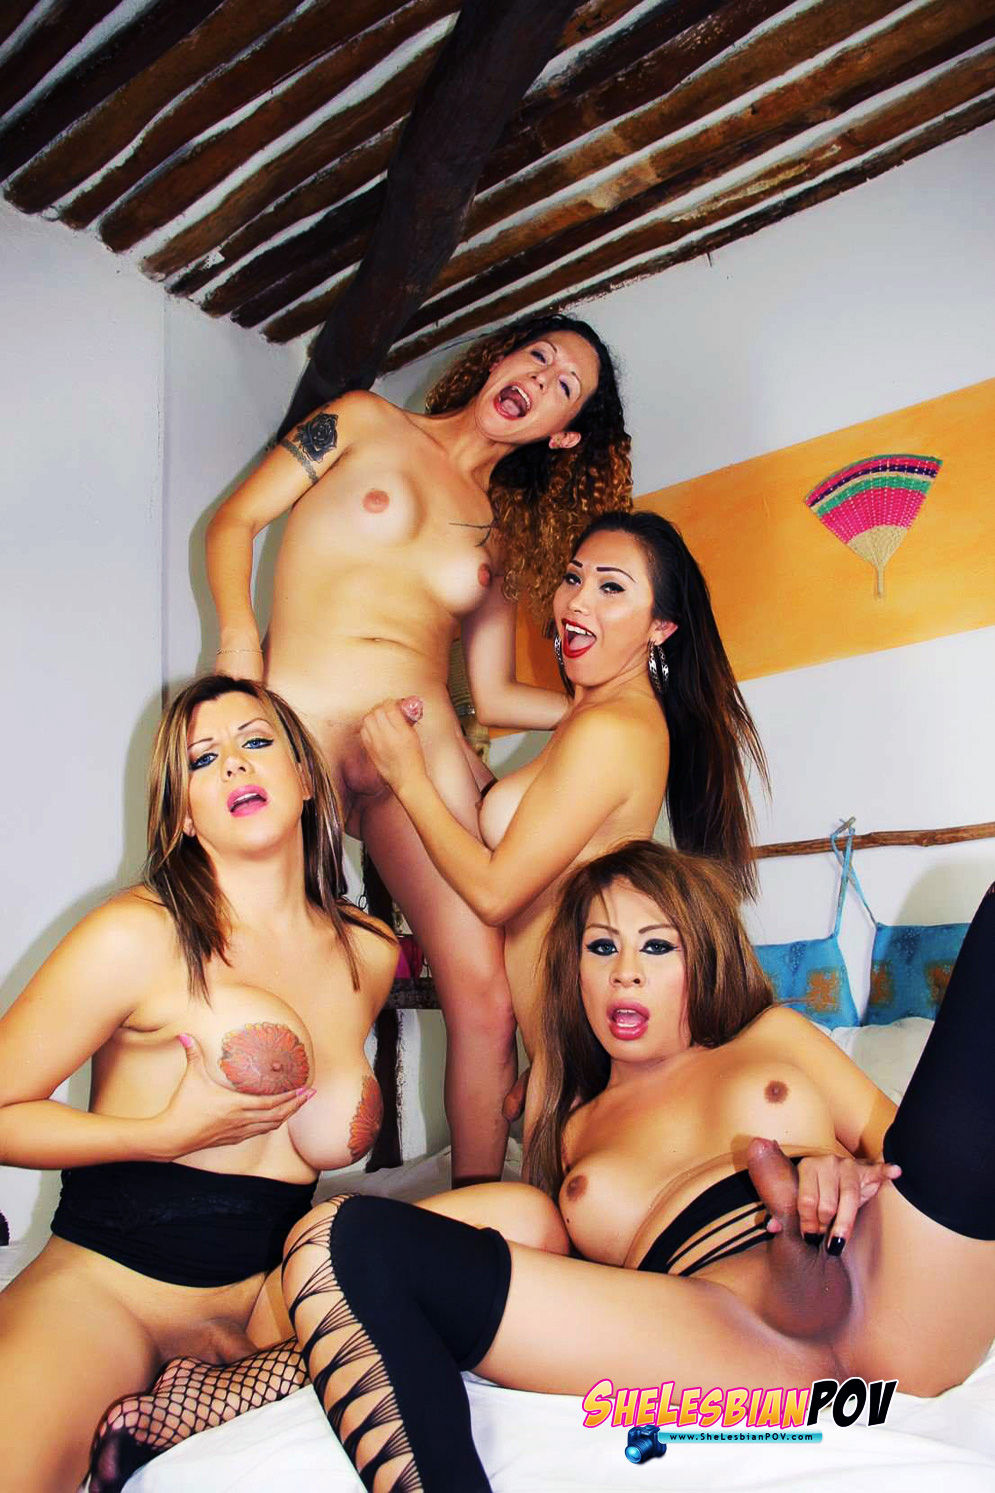 Nikki Montero, Nina StrongHold,Naomi CHi and TaniaQ have a hot 4some for SheLesbianPOV.